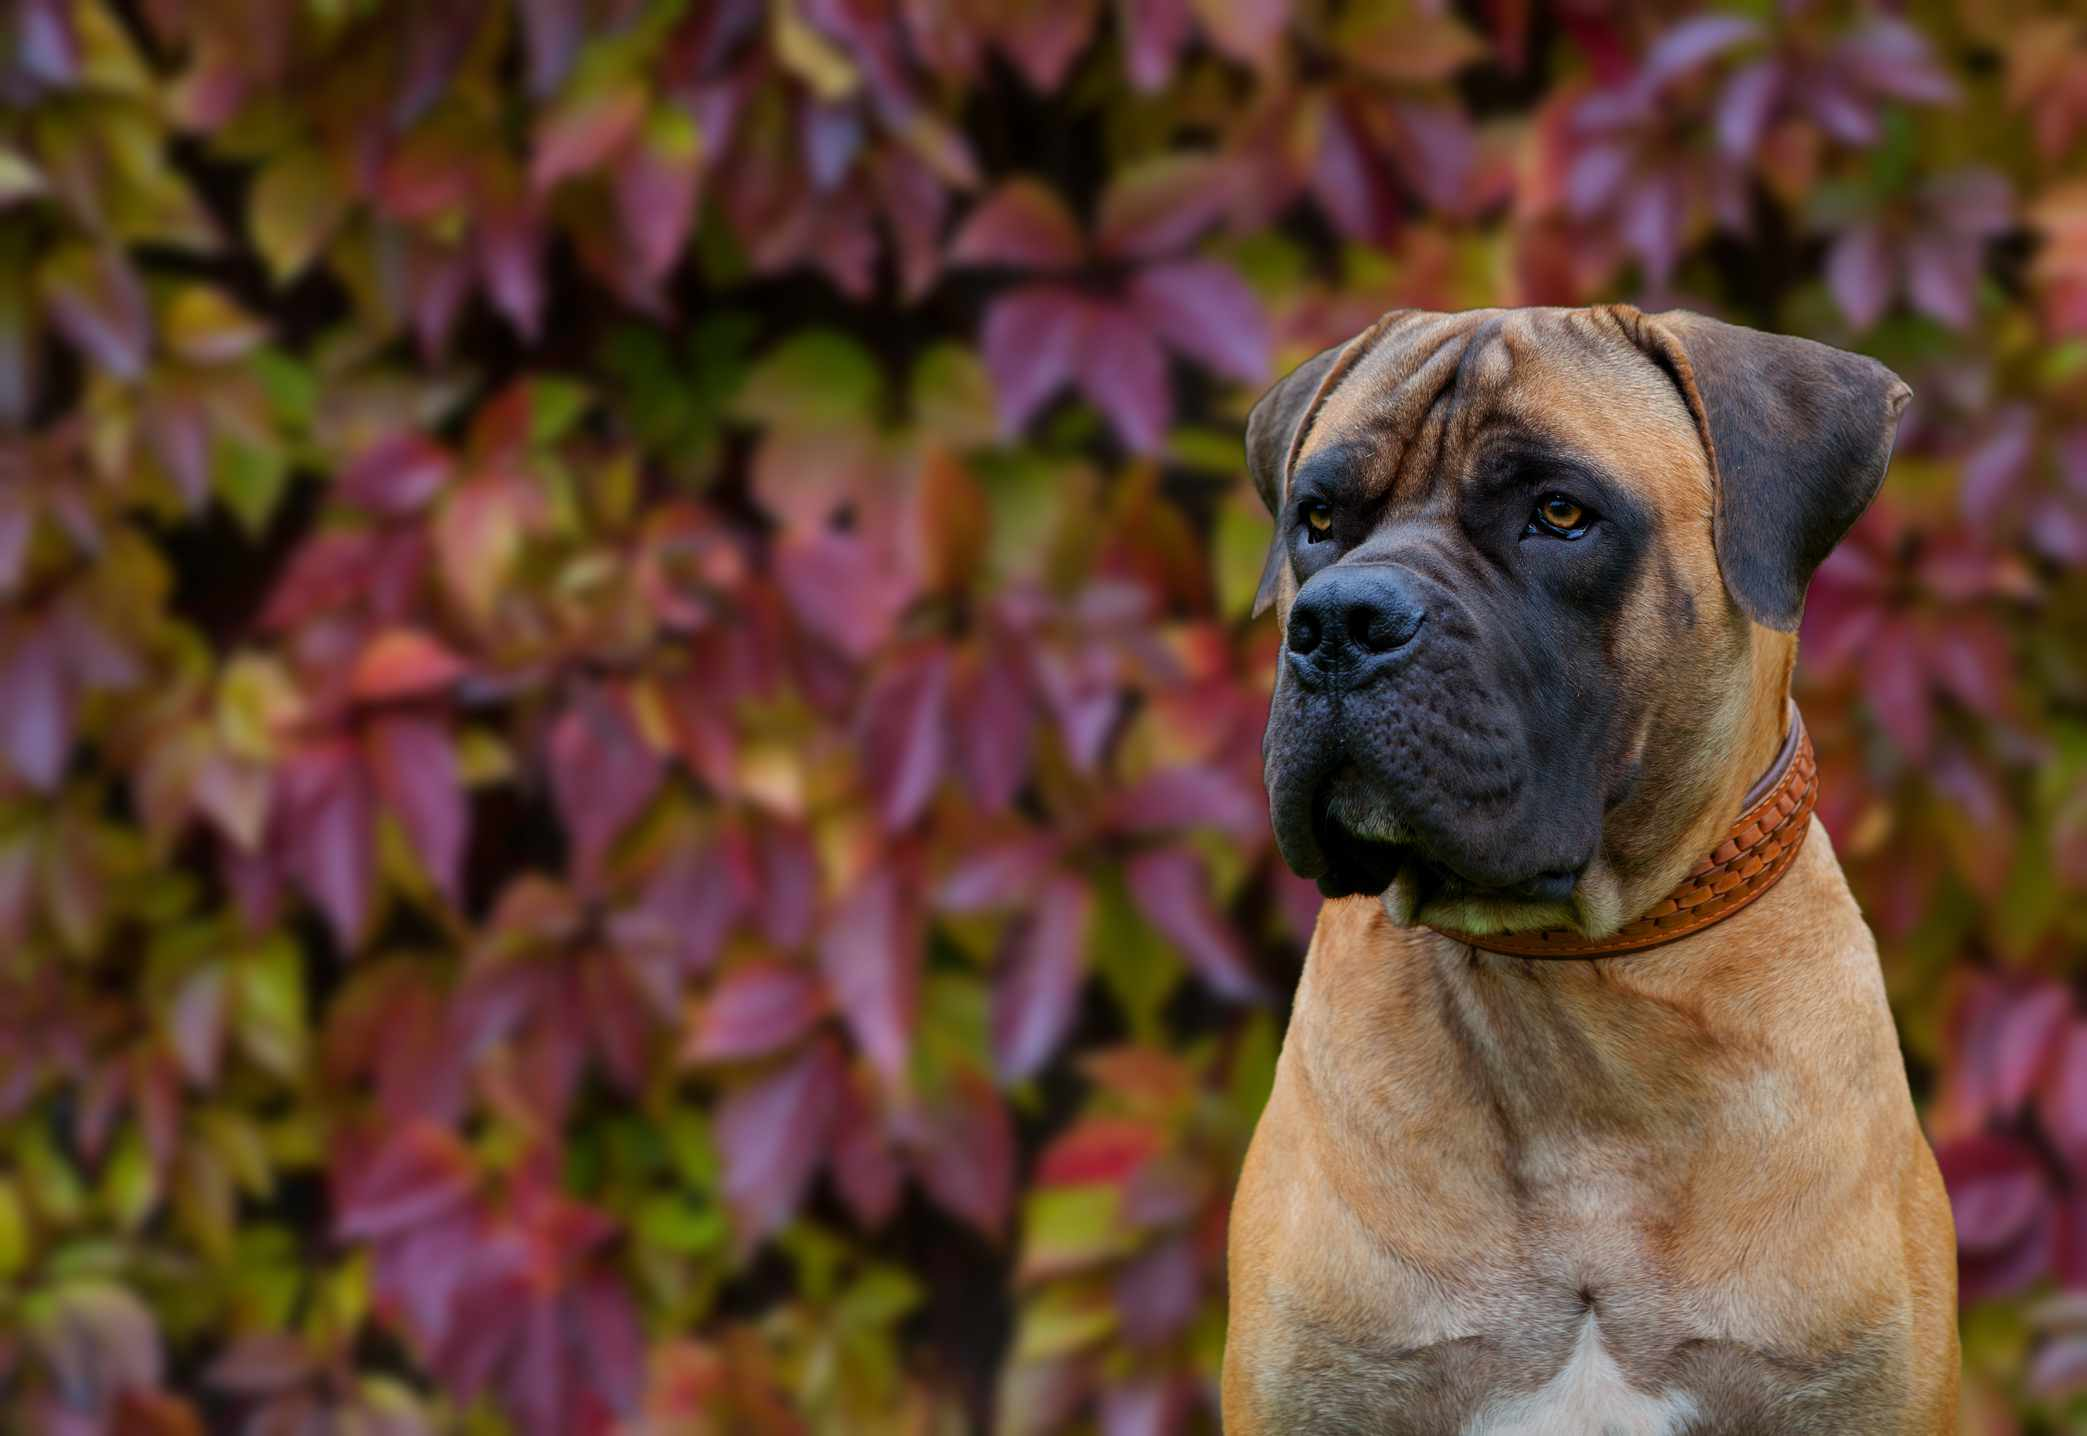 A large dog, resembling a mastiff, looking away from the camera in front of leaves.